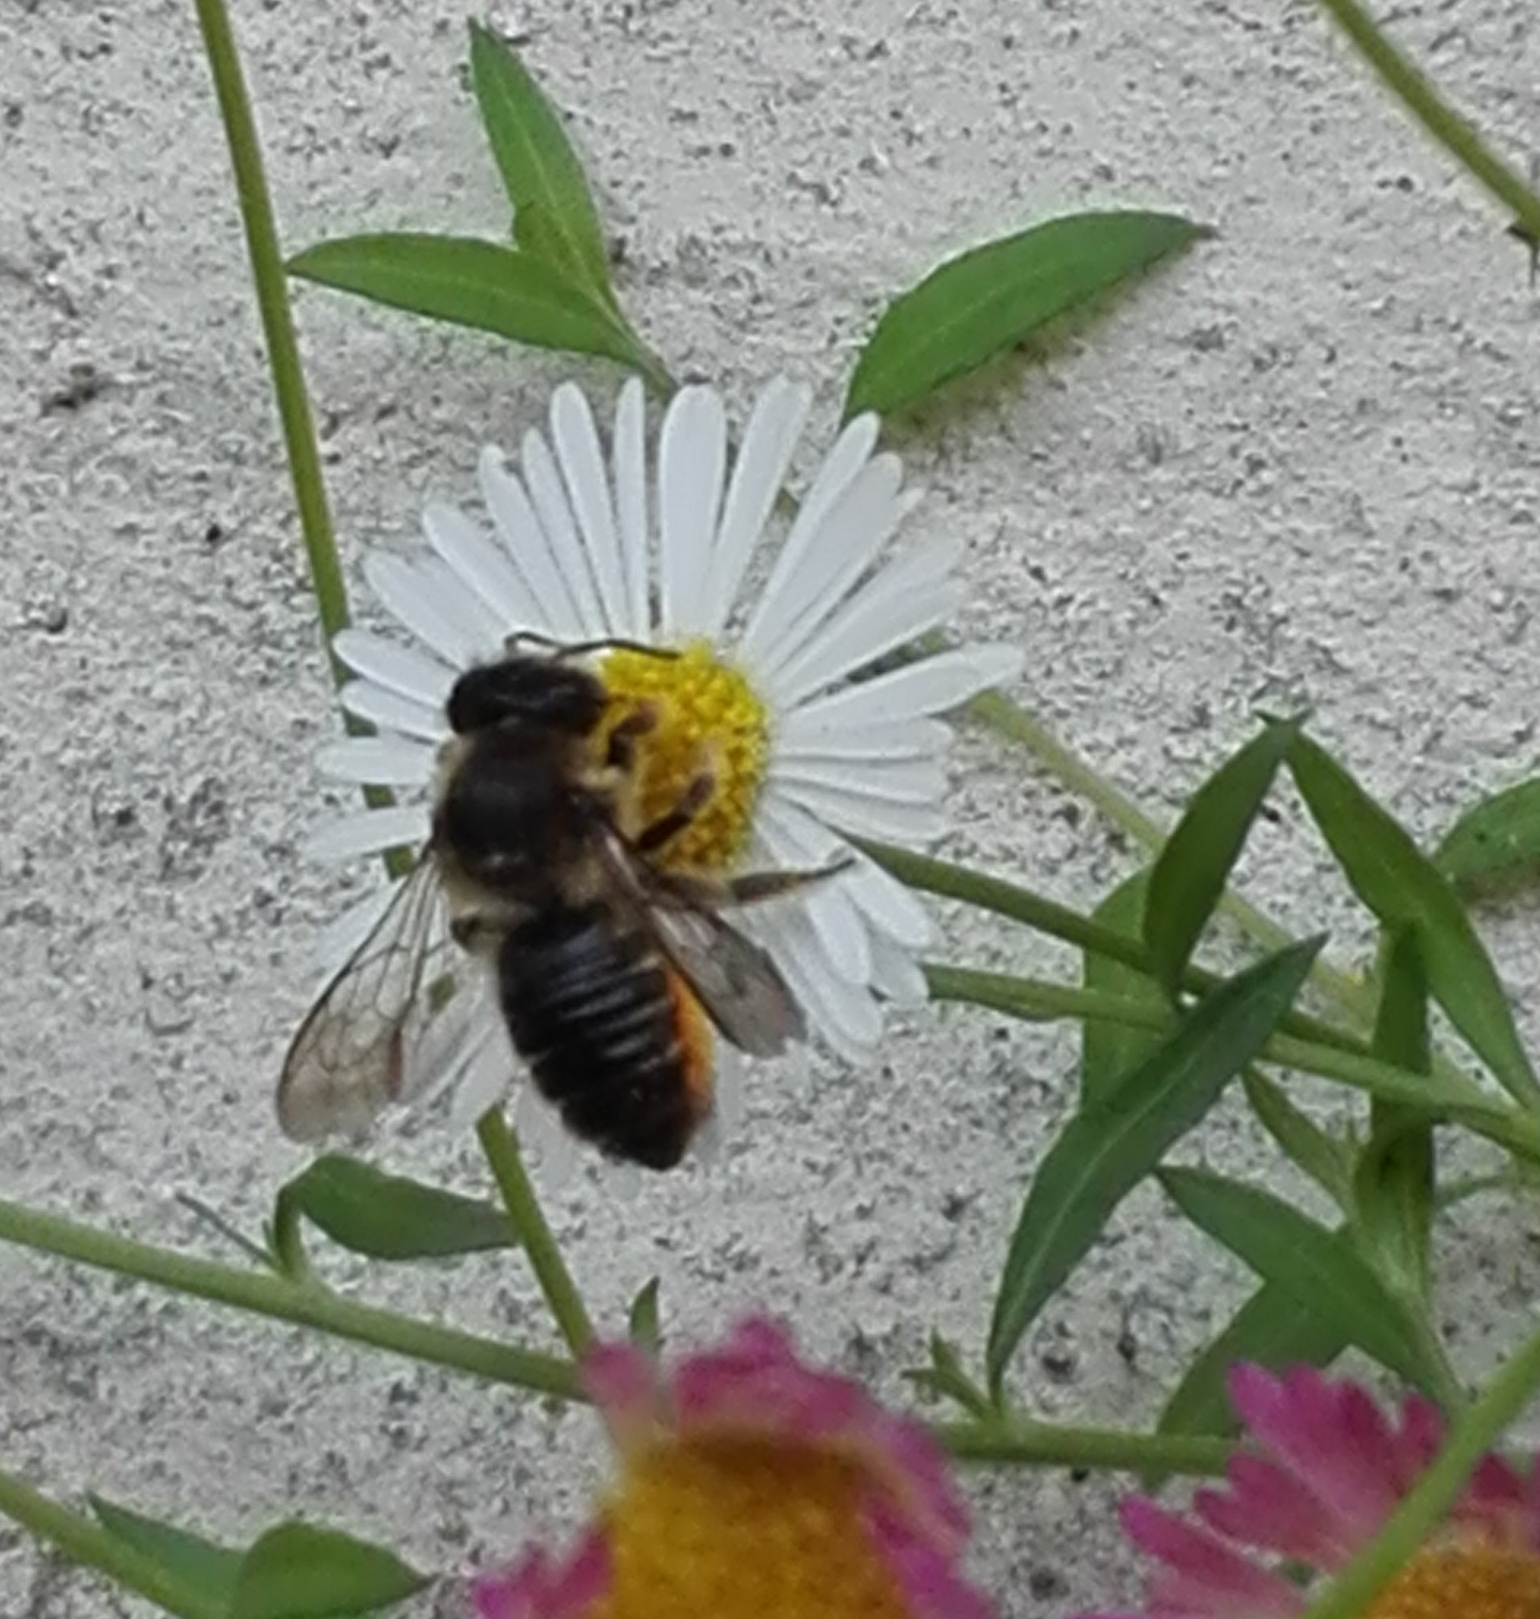 181 Patchwork Leaf-cutter Bee on Wall Daisy